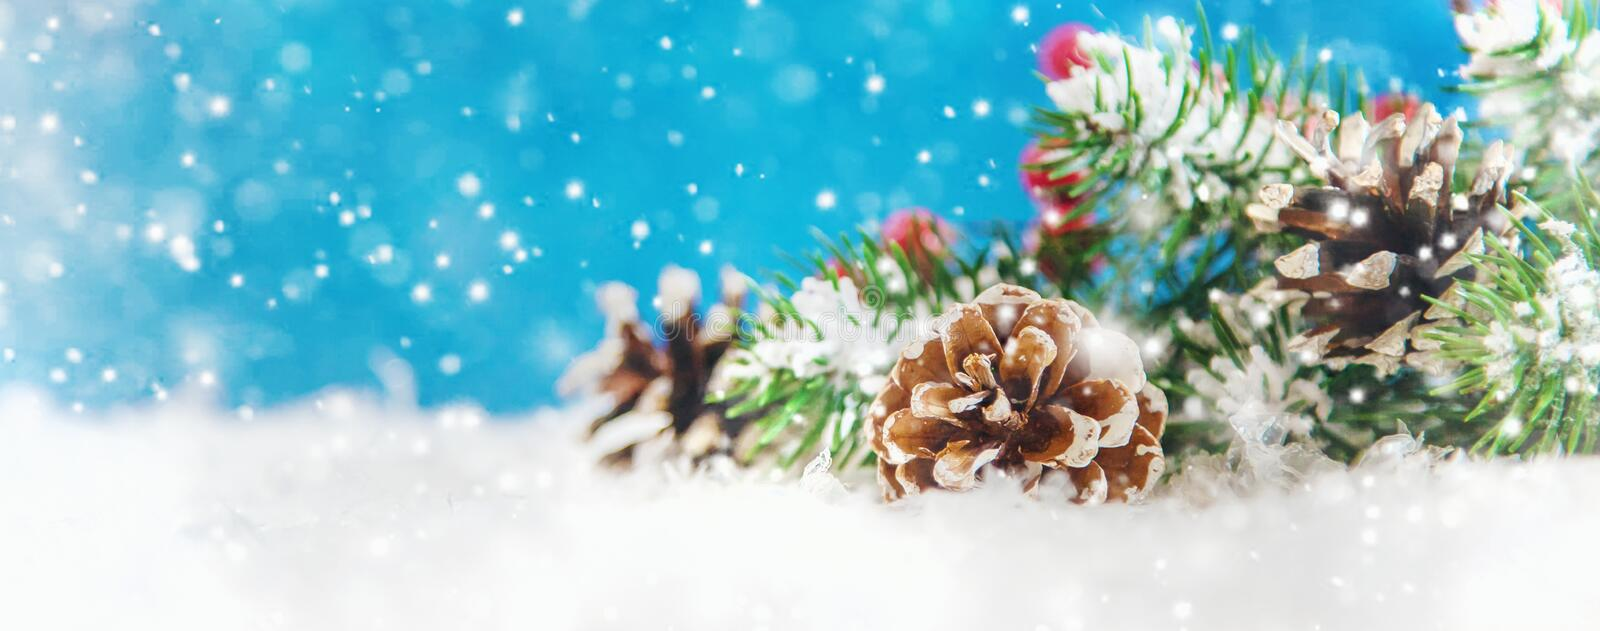 Merry Christmas and Happy New Year, Holidays greeting card background. Selective focus. Merry Christmas and Happy New Year, Holidays greeting card with blurred stock photo